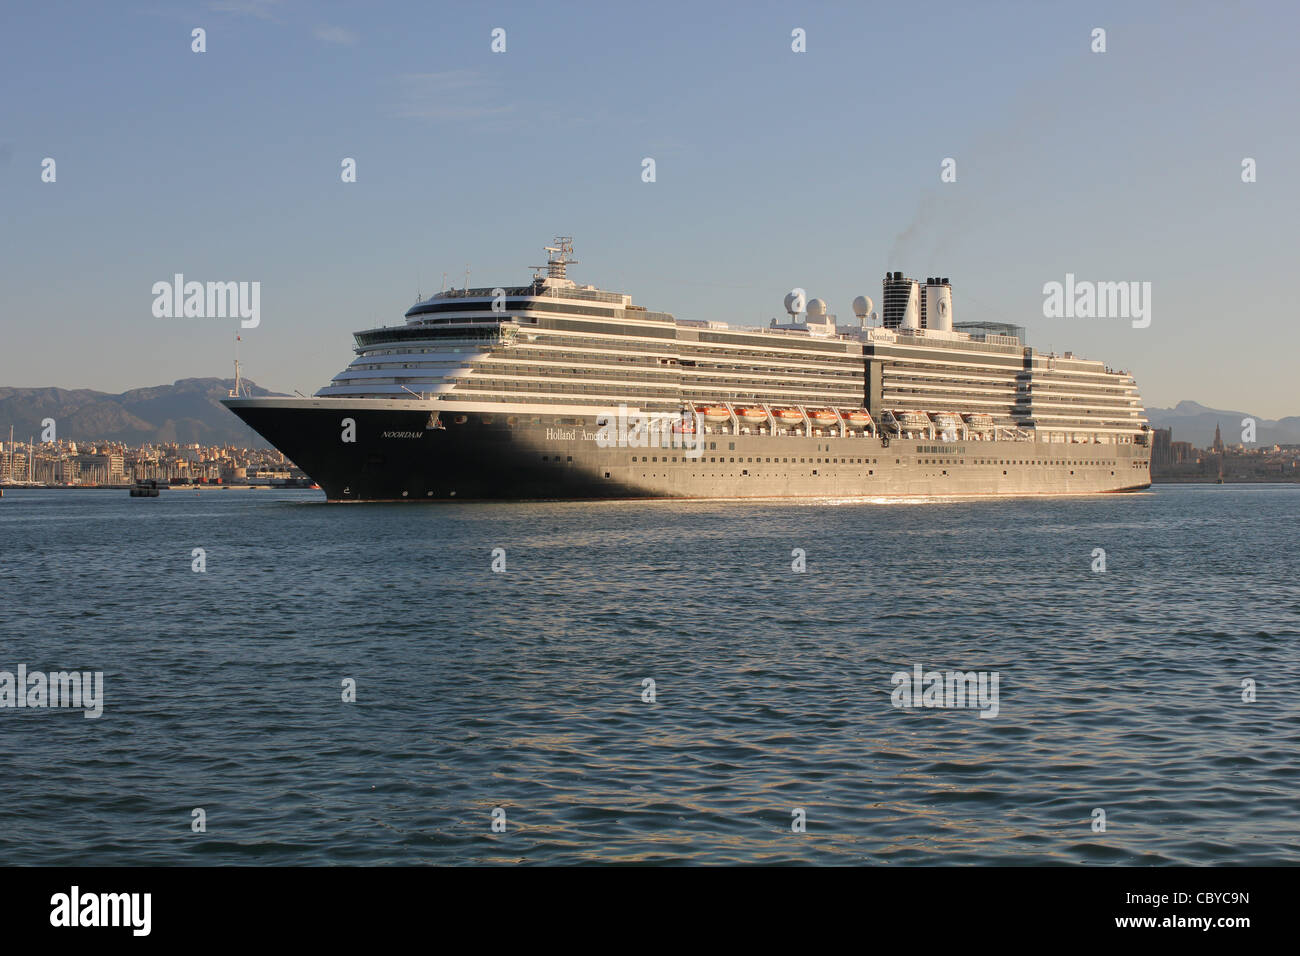 Holland America Line Cruise Ship 'Noordam' early morning arrival during a regular visit to the Port of Palma - Stock Image